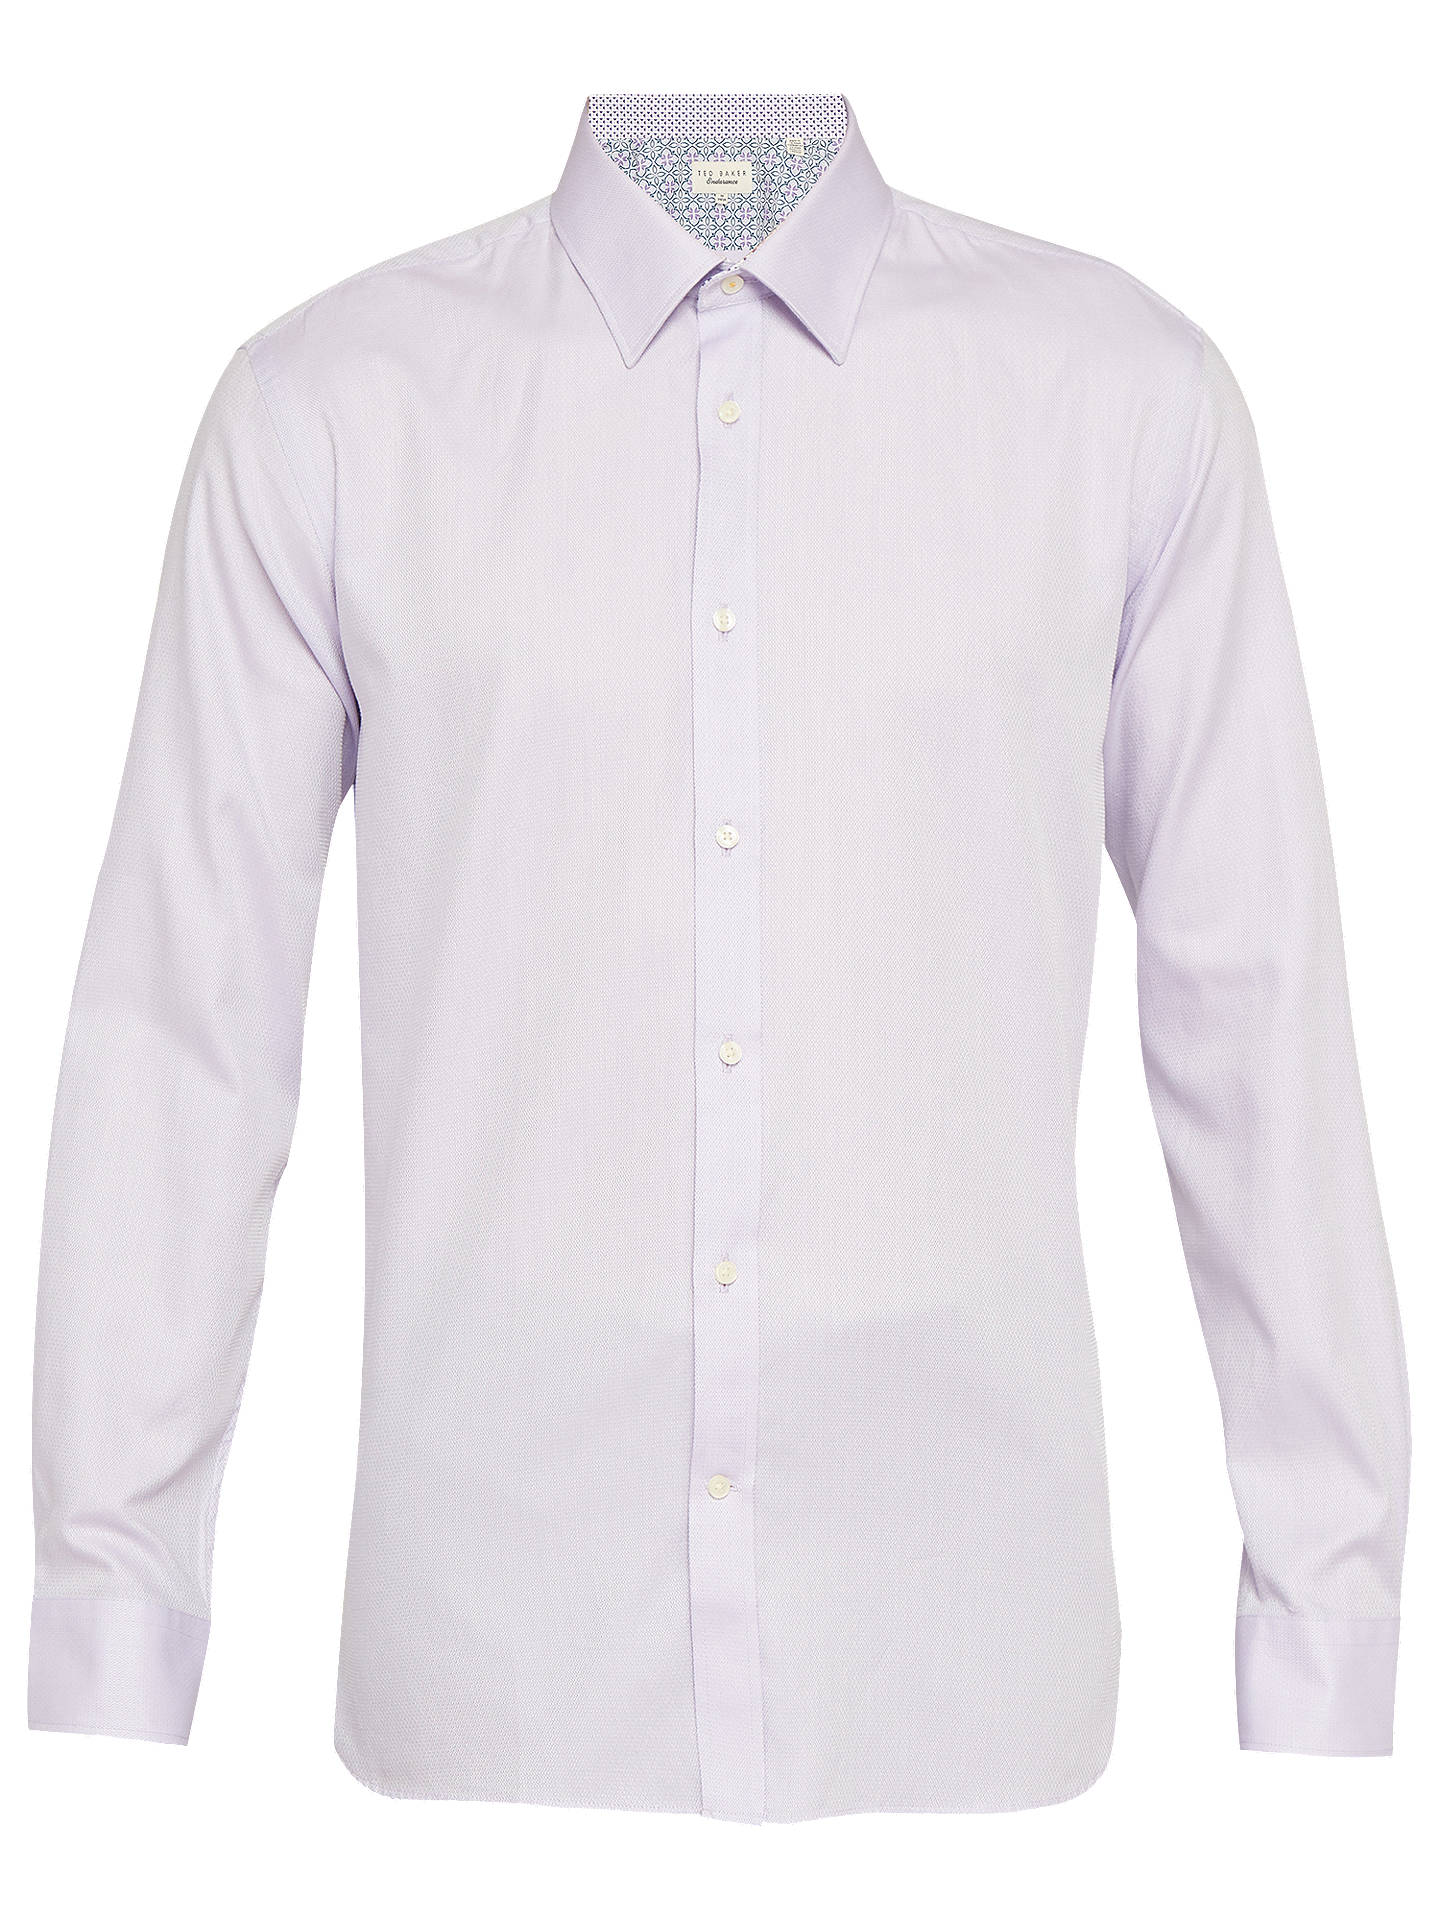 BuyTed Baker Happs Diamond Dobby Tailored Fit Shirt, Lilac, 15.5 Online at johnlewis.com